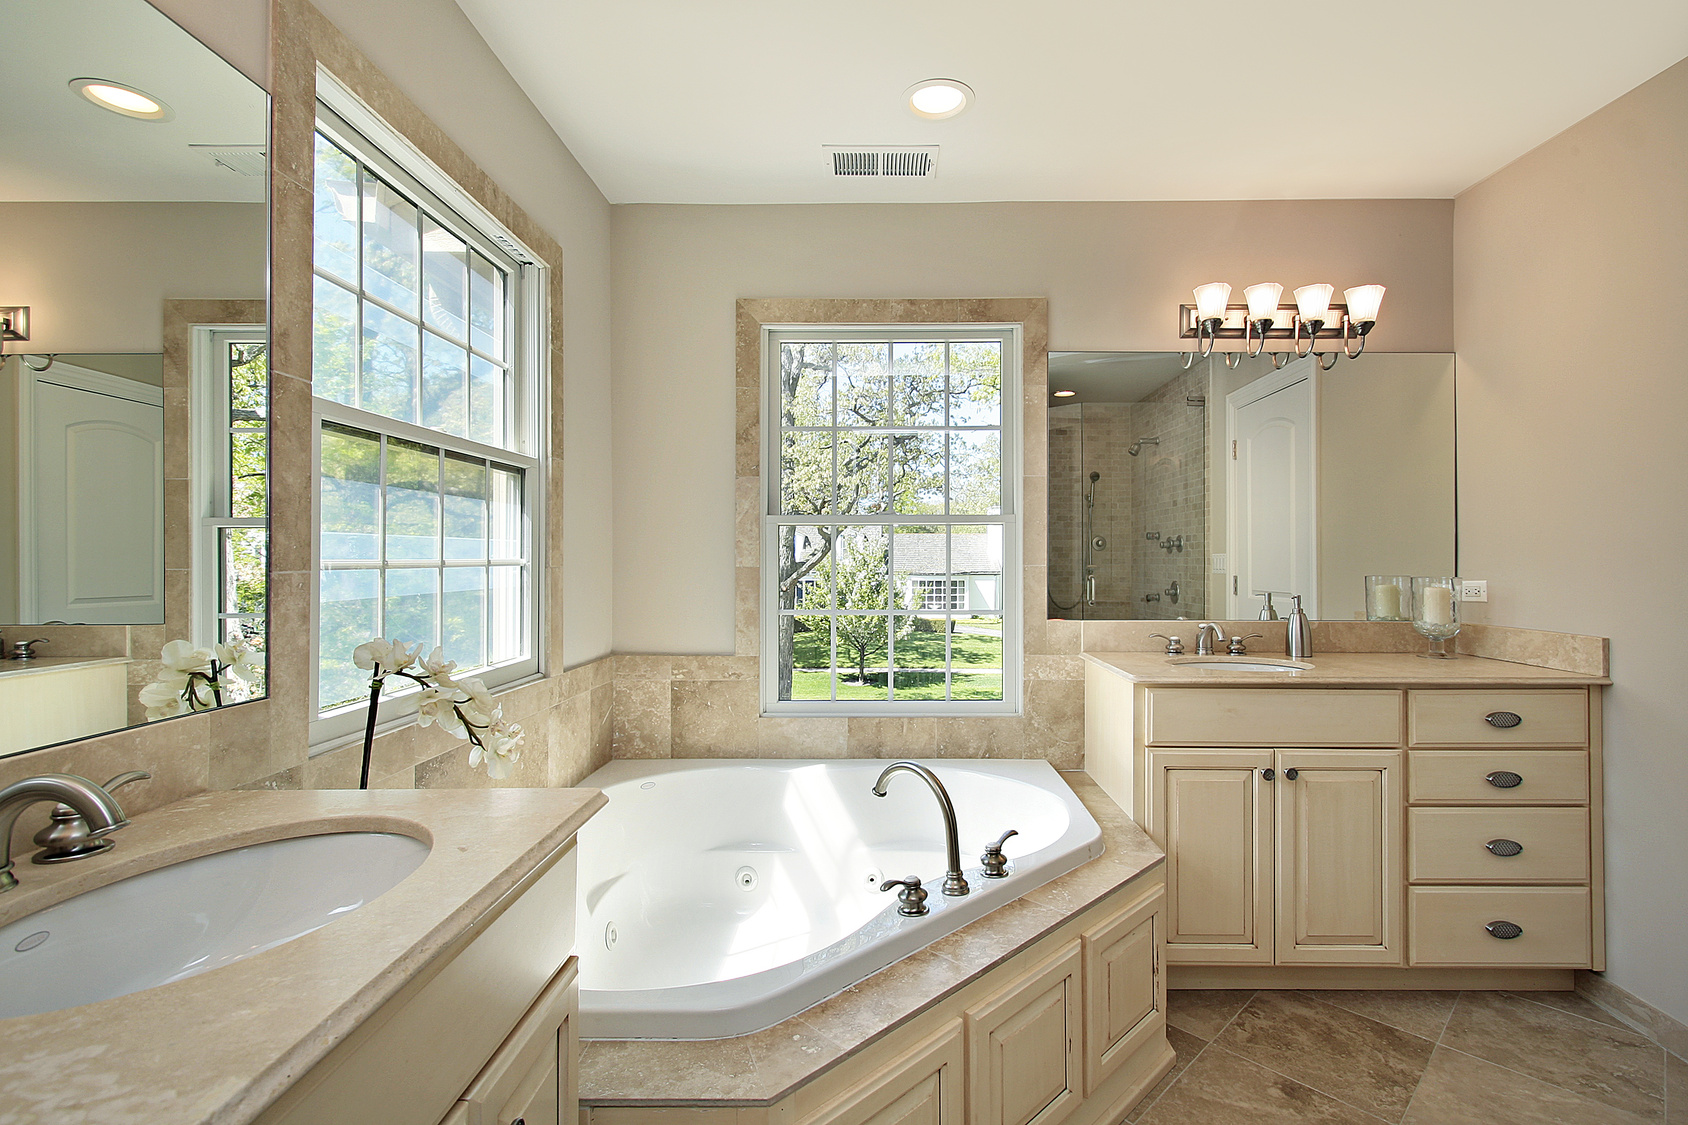 Bathroom remodeling renovations bathroom remodel for Bathroom contractors